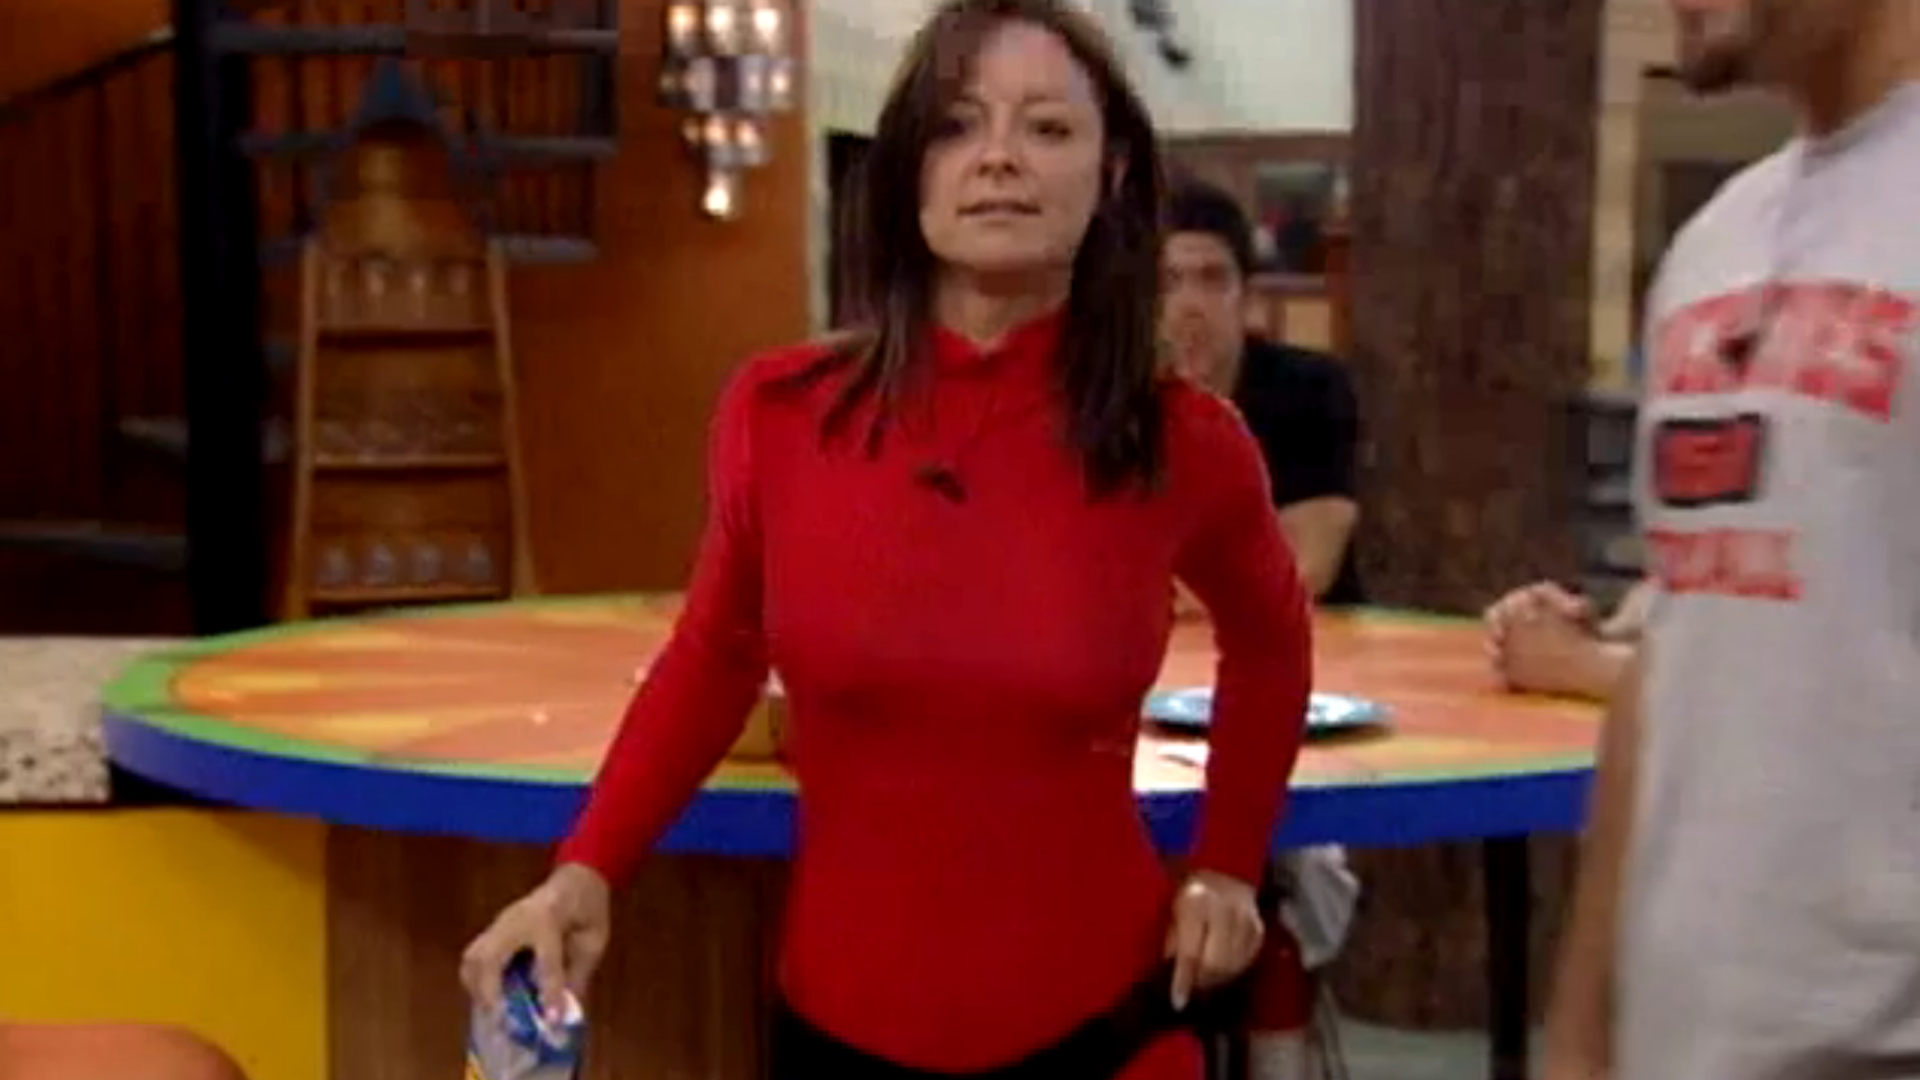 Sheila Kennedy's red unitard